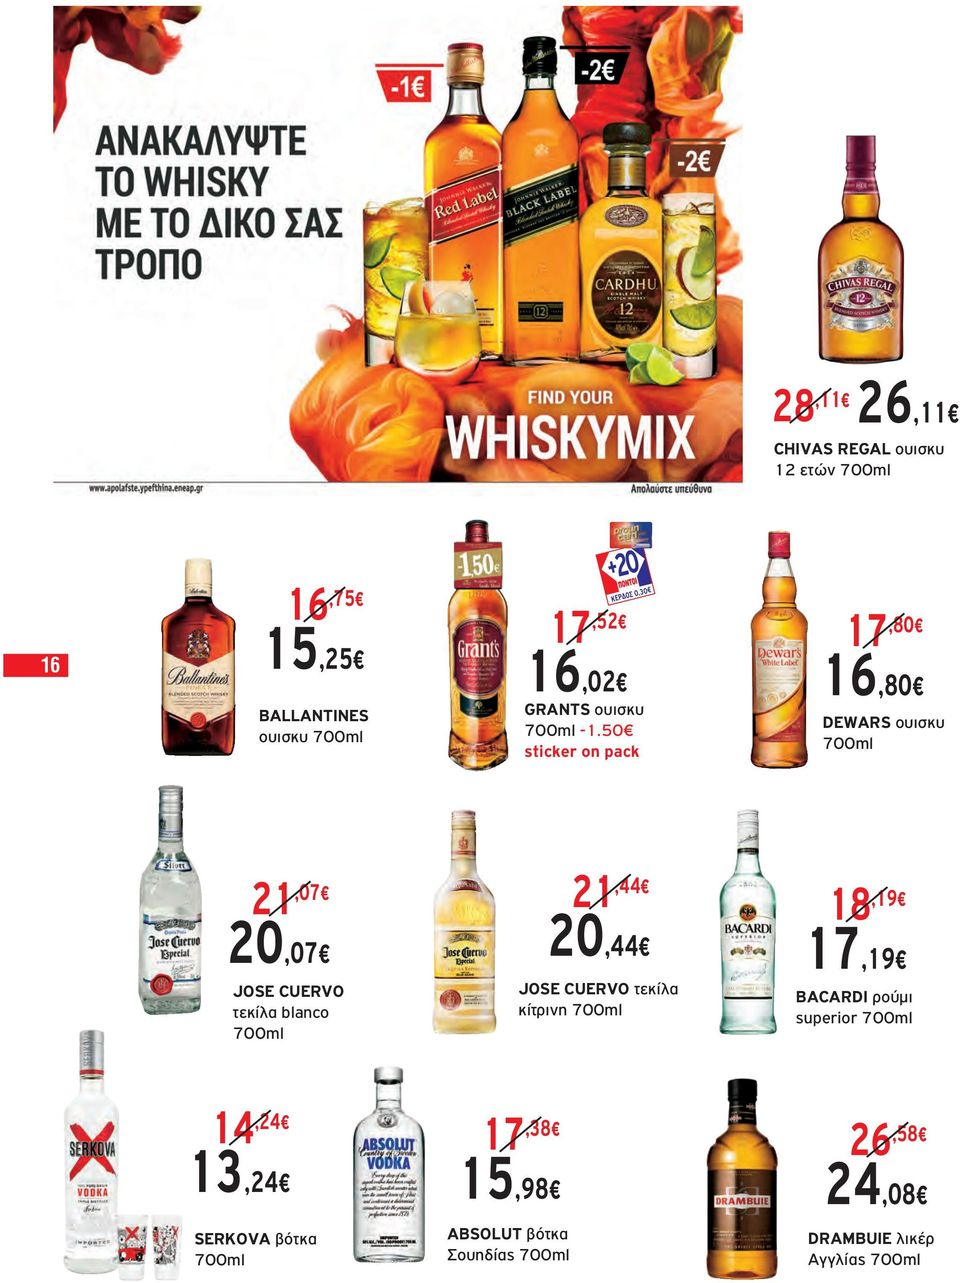 50 sticker on pack DEWARS ουισκυ 700ml 21,07 20,07 JOSE CUERVO τεκίλα blanco 700ml 21,44 20,44 JOSE CUERVO